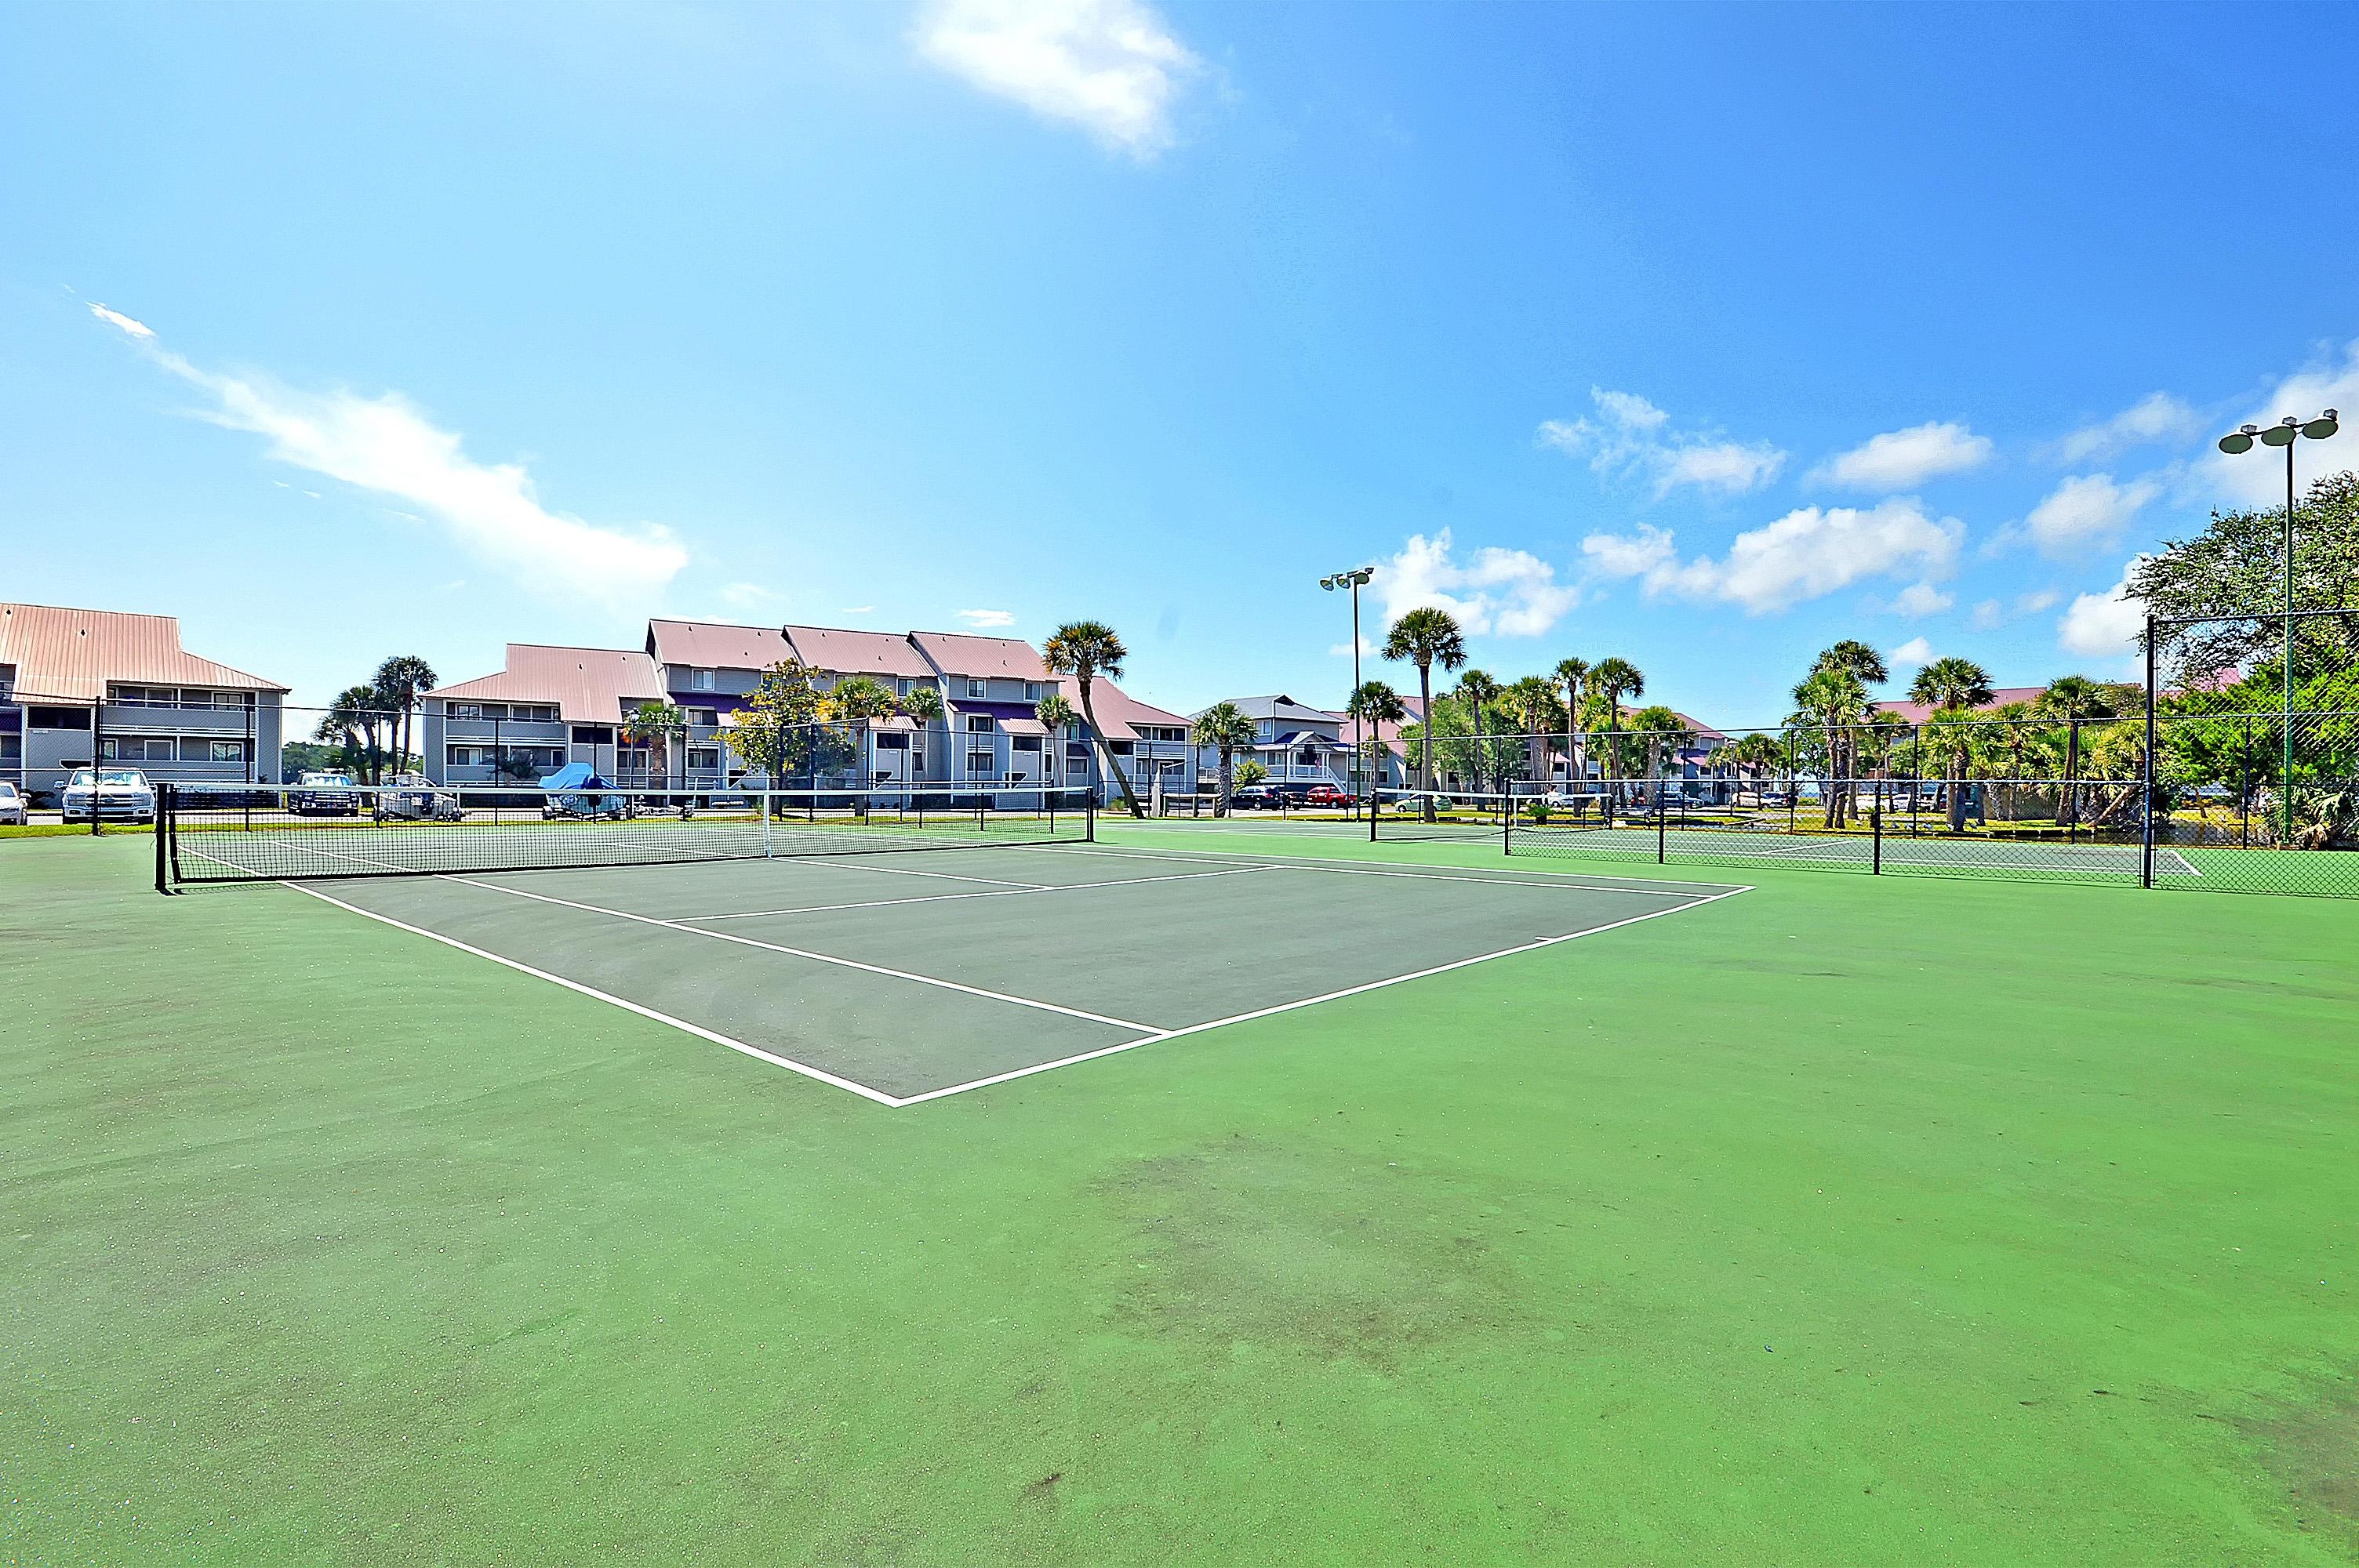 Play a friendly game of tennis at the complex courts.